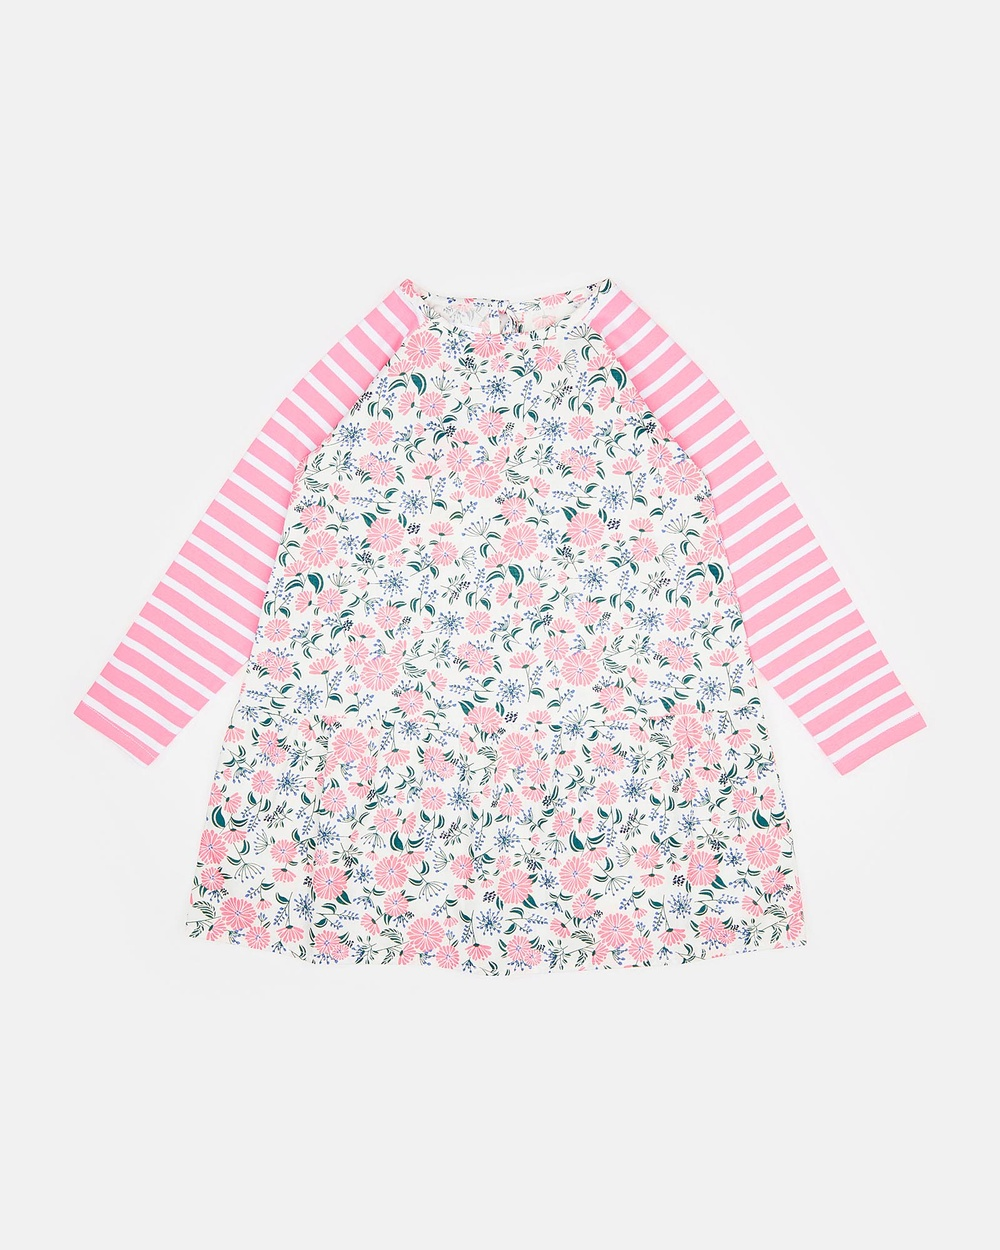 PLAY etc Floral with Pink Sleeves A-Line Flowers and Stripes Dress